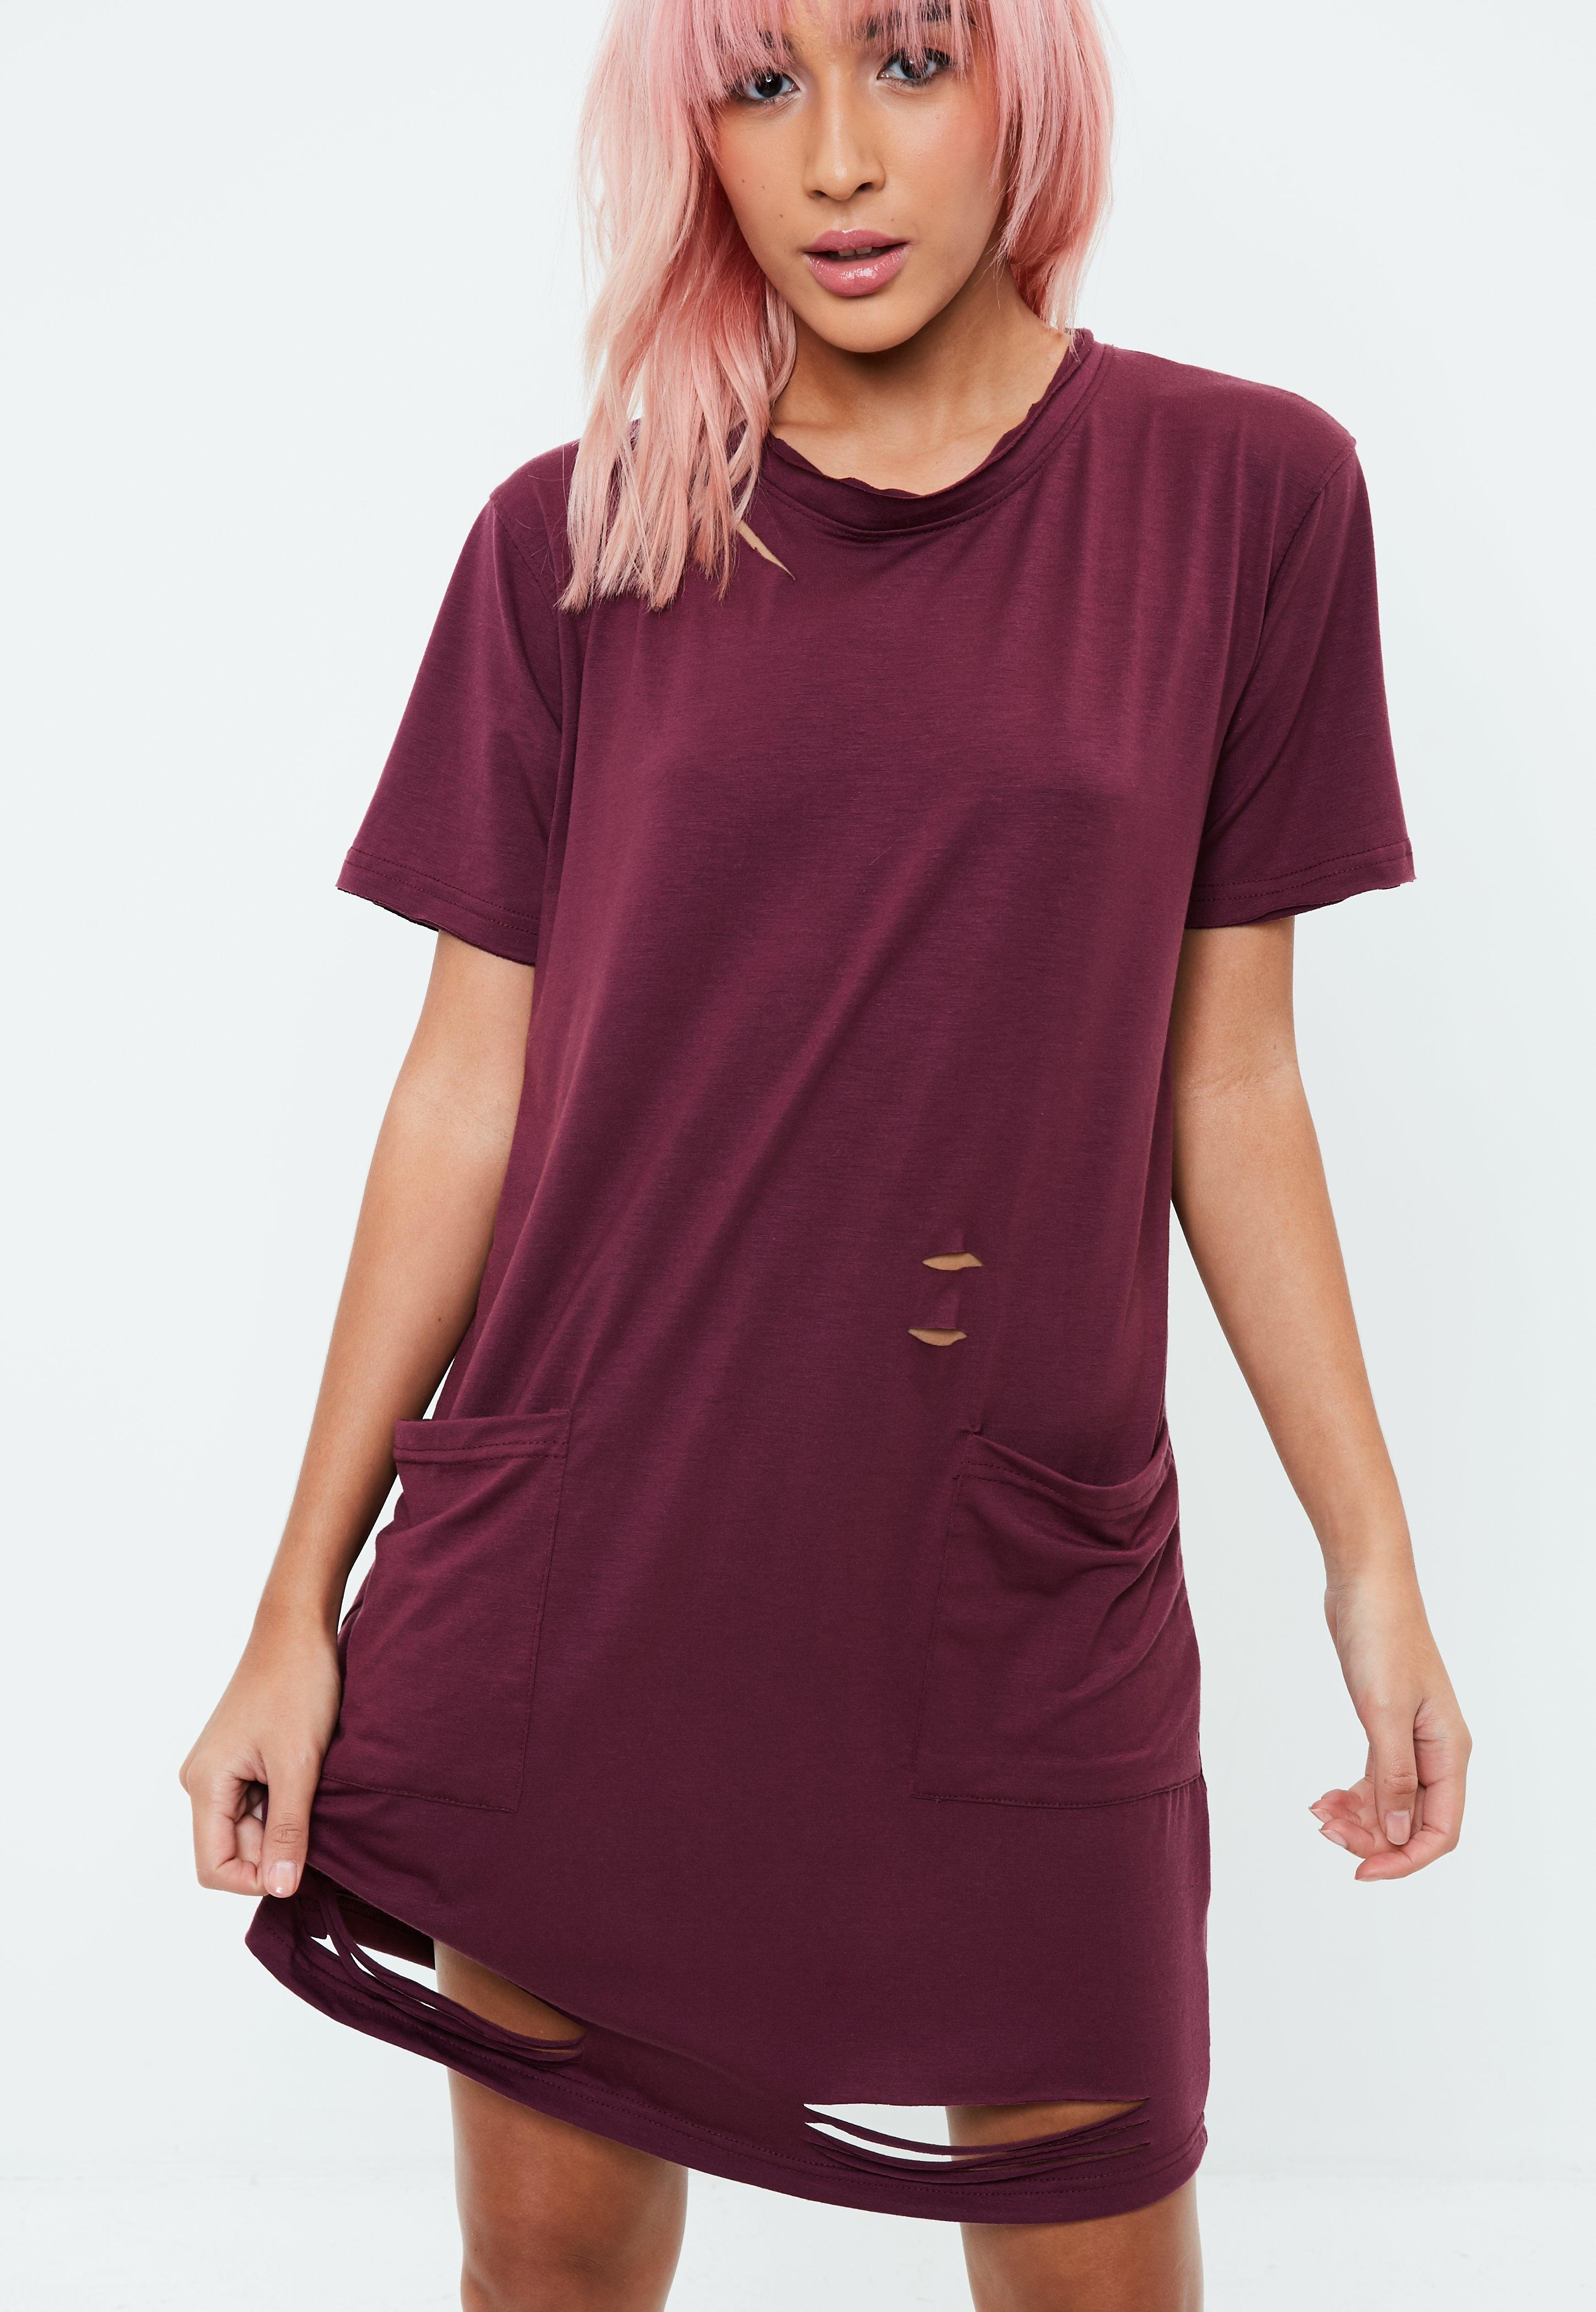 50ef6ffc7816 Lyst - Missguided Burgundy Distressed Oversized T-shirt Dress in Purple